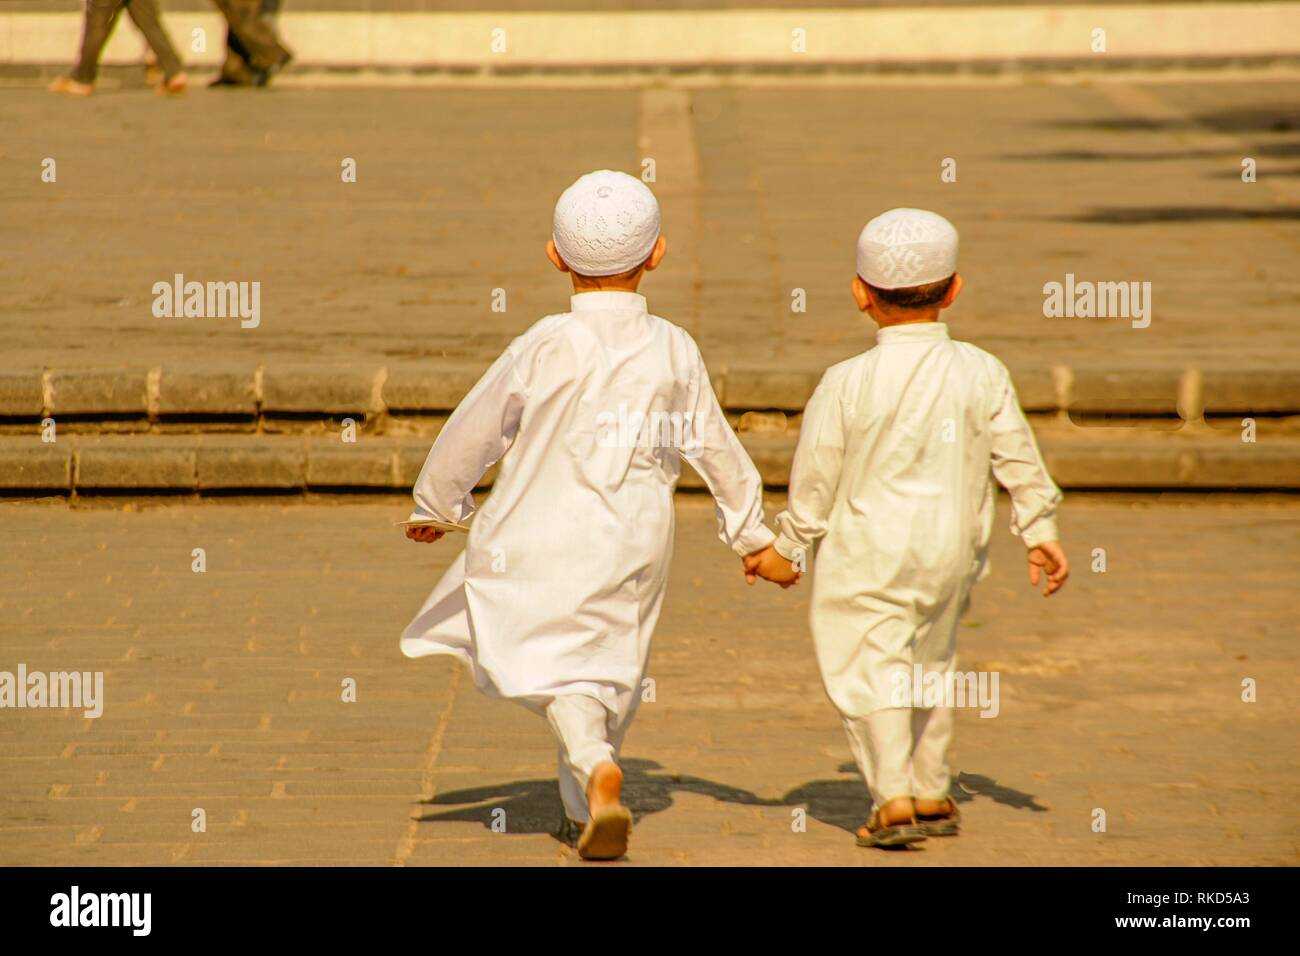 Syria, Homs, young kids going to Khaled Al-Walid mosque. - Stock Image